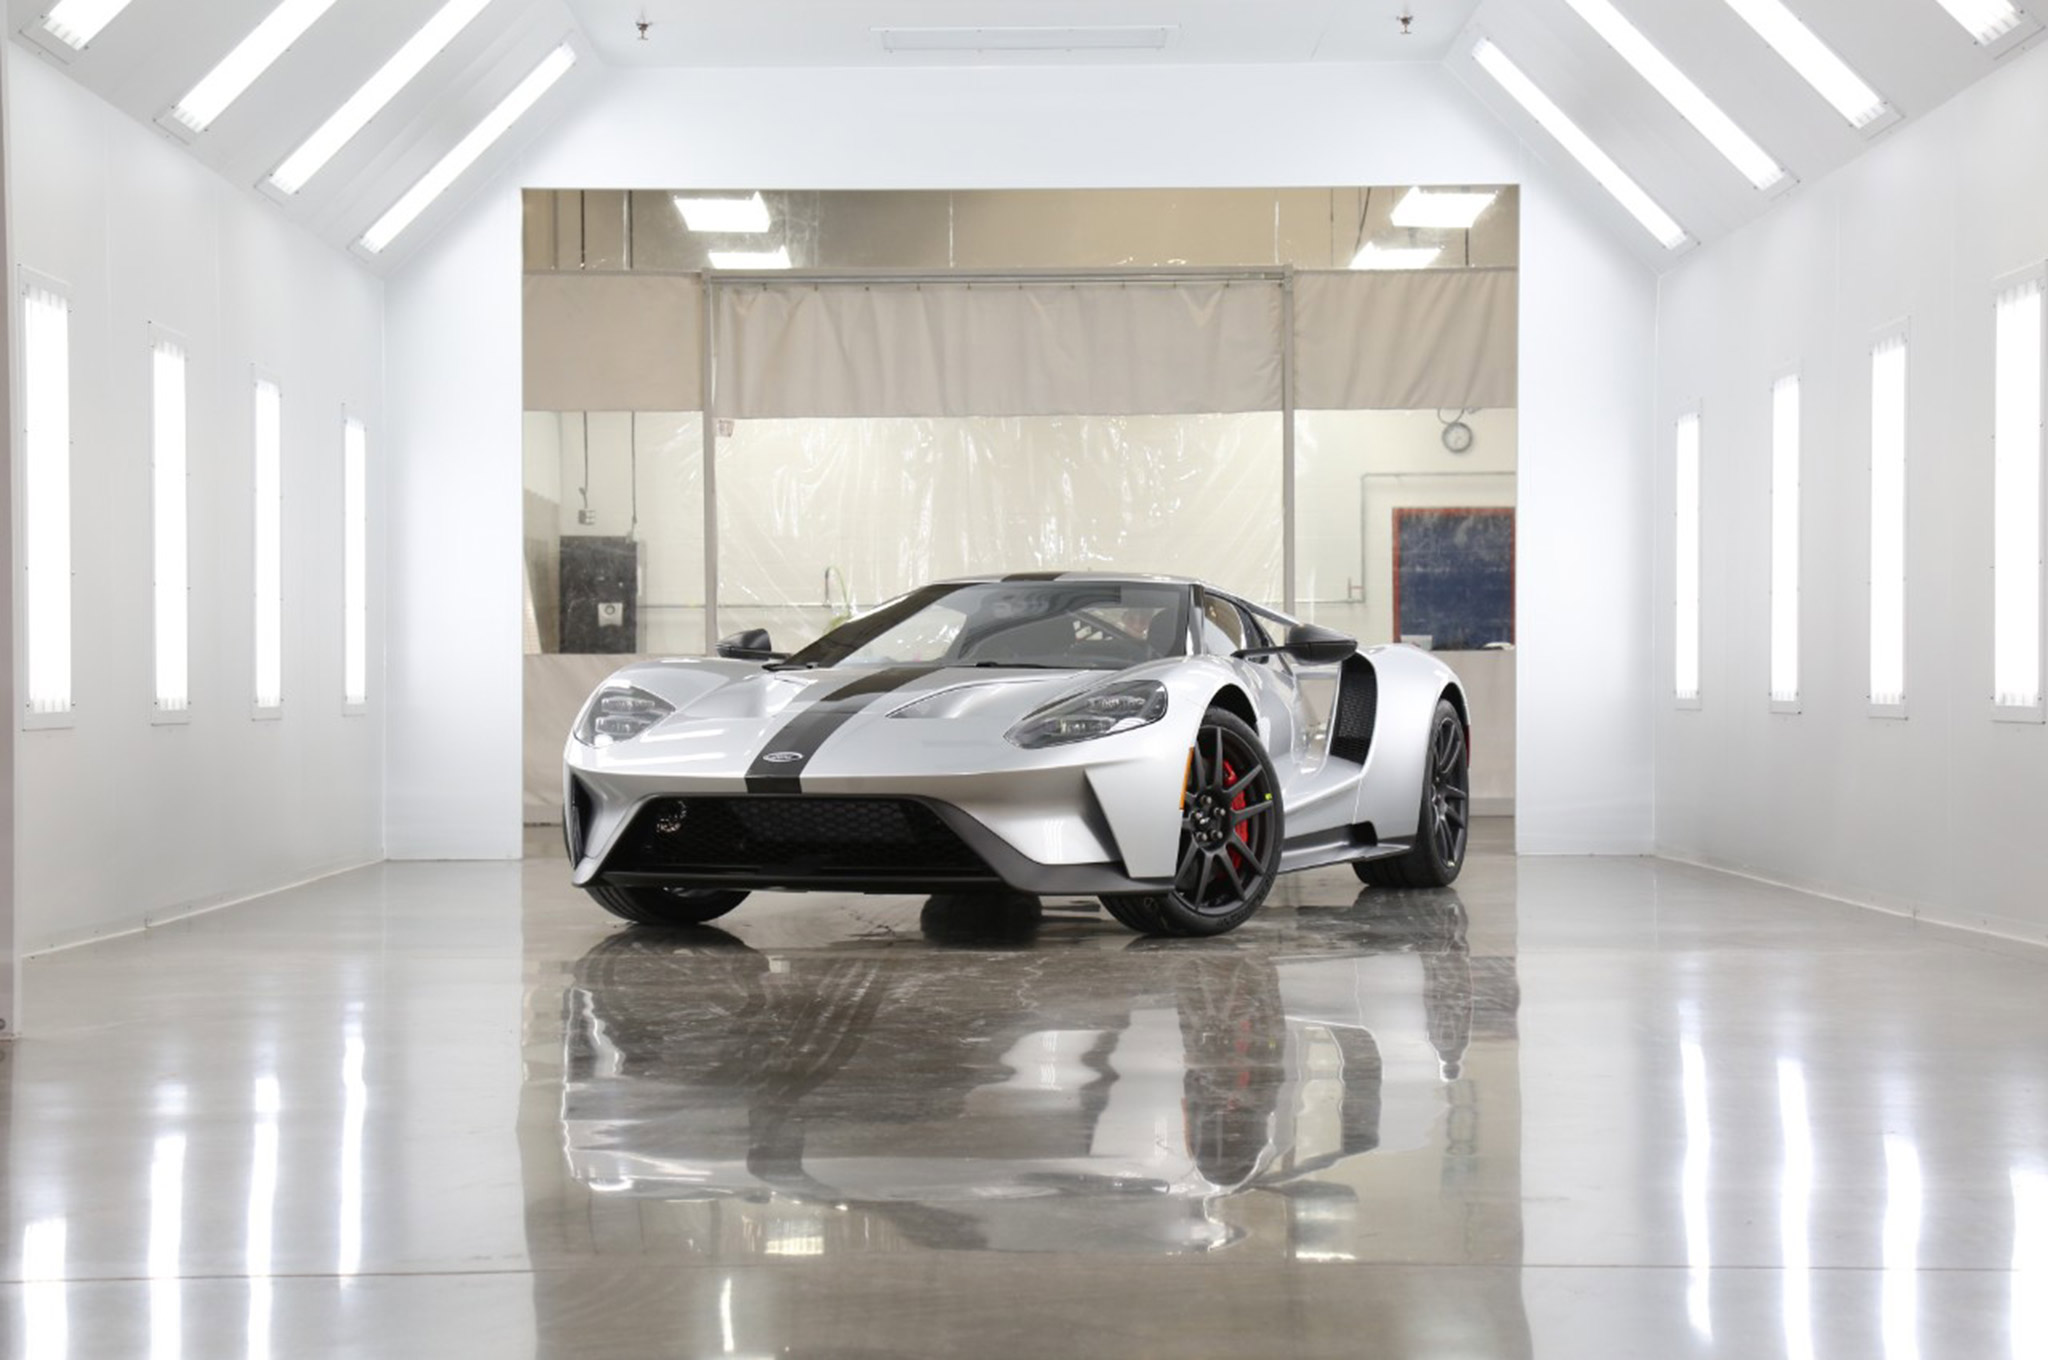 2017 Ford GT Competition Series 008 Front 3qtr Far